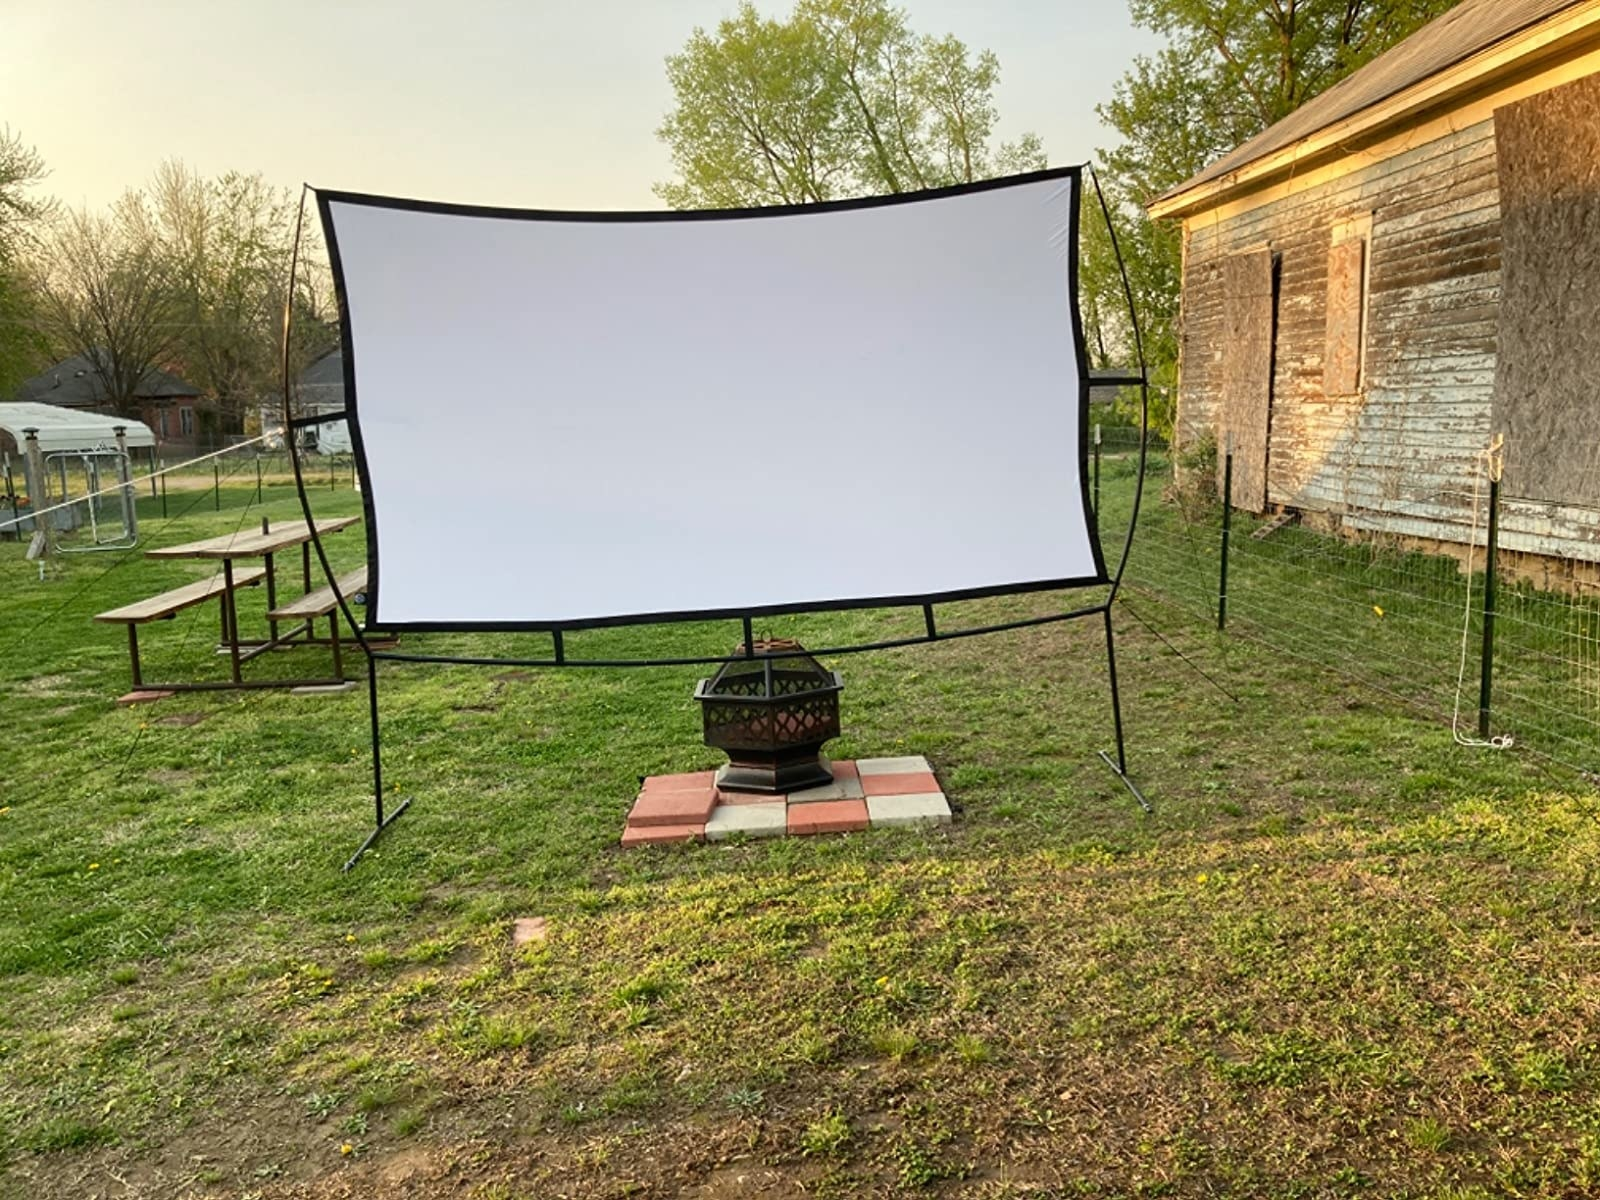 Reviewer photo of the screen in a backyard